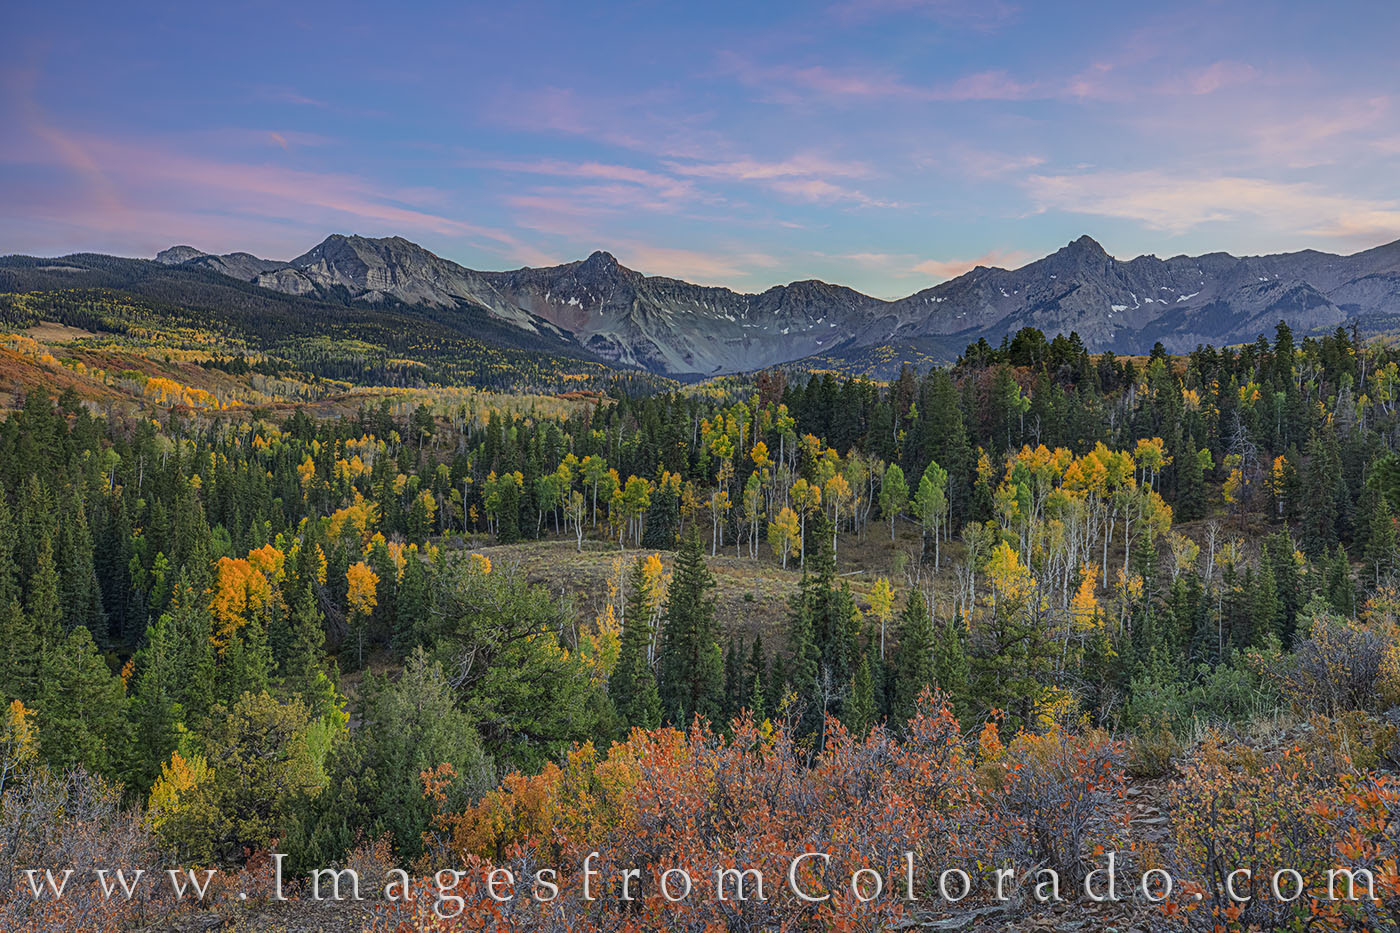 dallas divide, sneffels, CR 9, telluride, ridgway, autumn, fall, gold, orange, red, photo